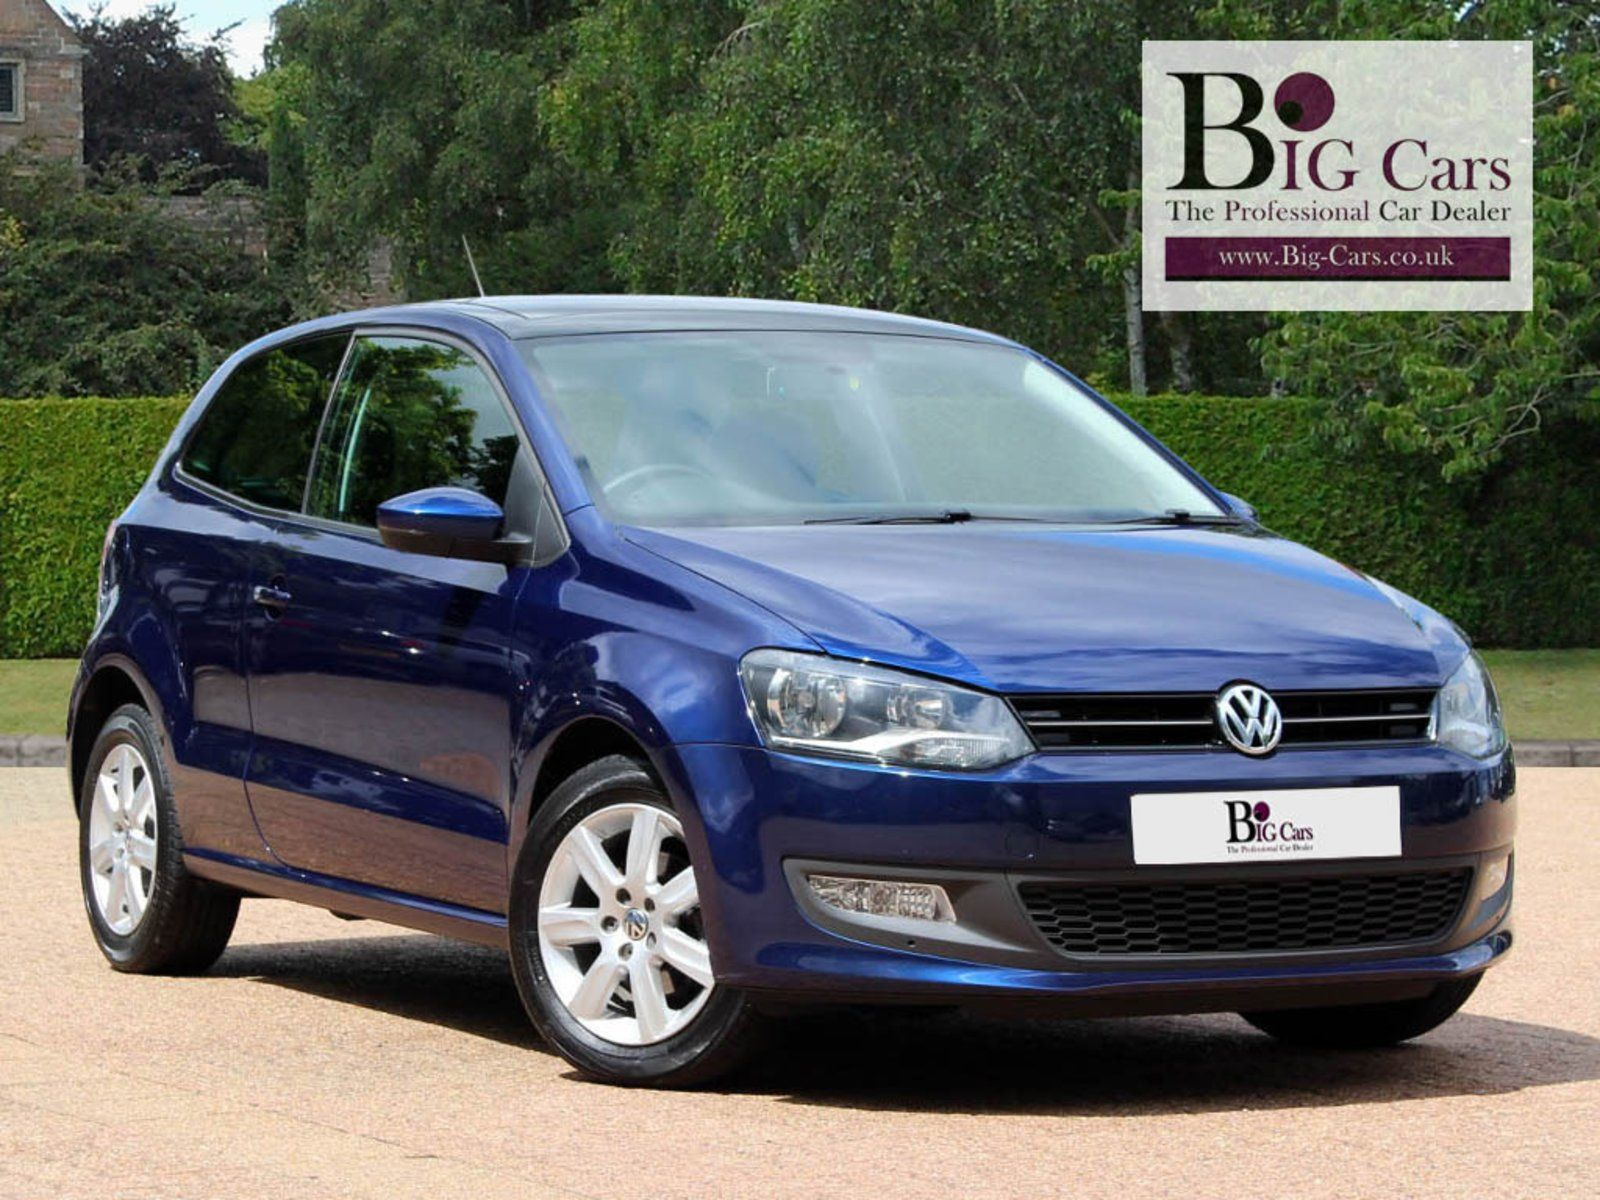 Volkswagen Polo Match S A Http Www Big Cars Co Uk Used Cars